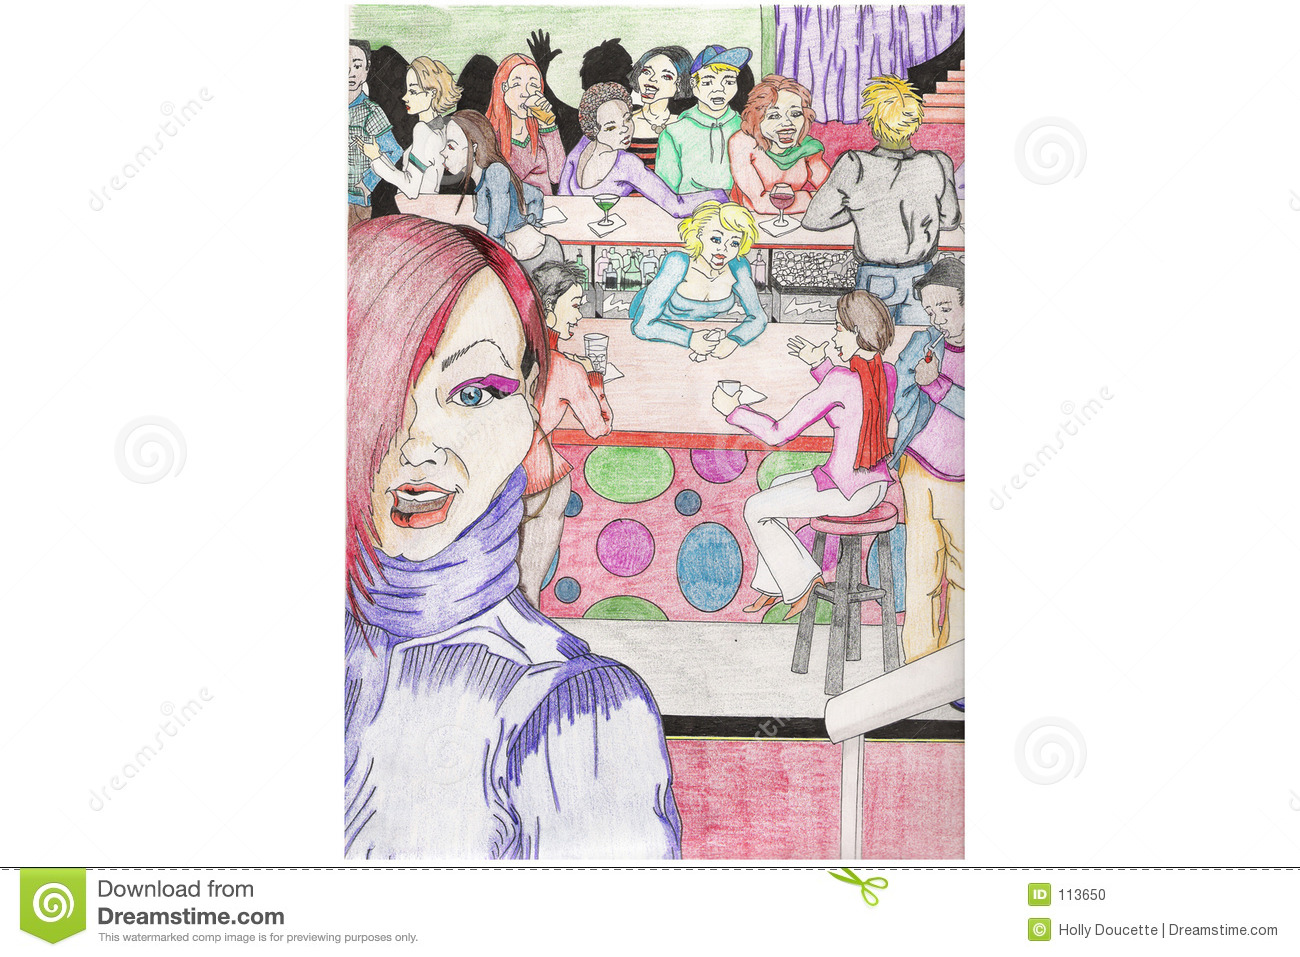 Hip and colorful bar scene